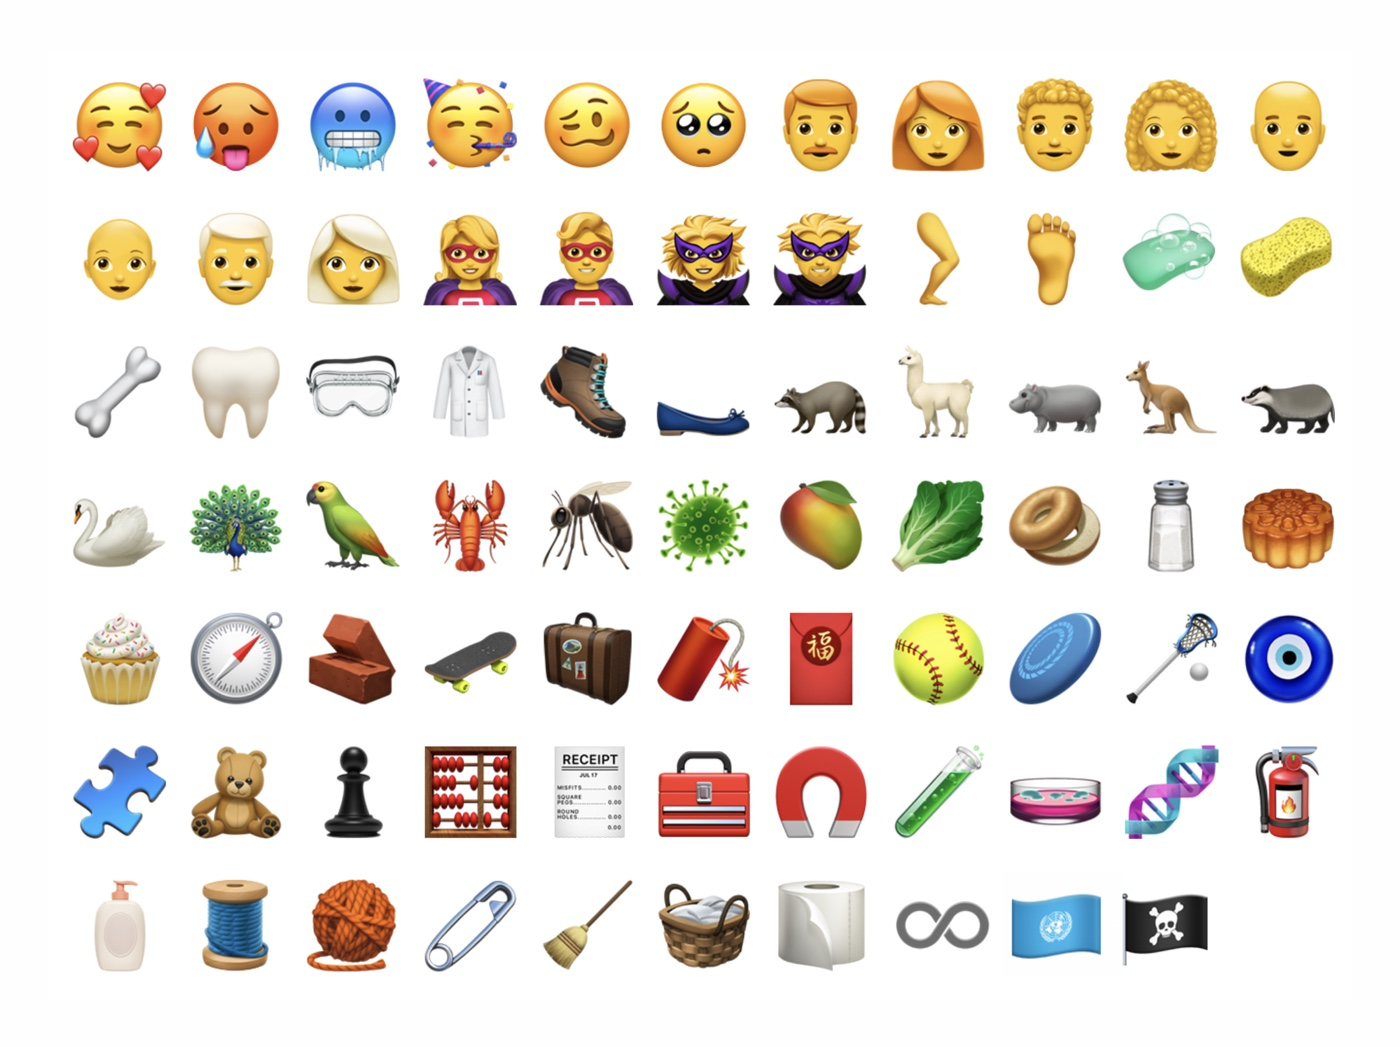 New emojis on iOS in 2018